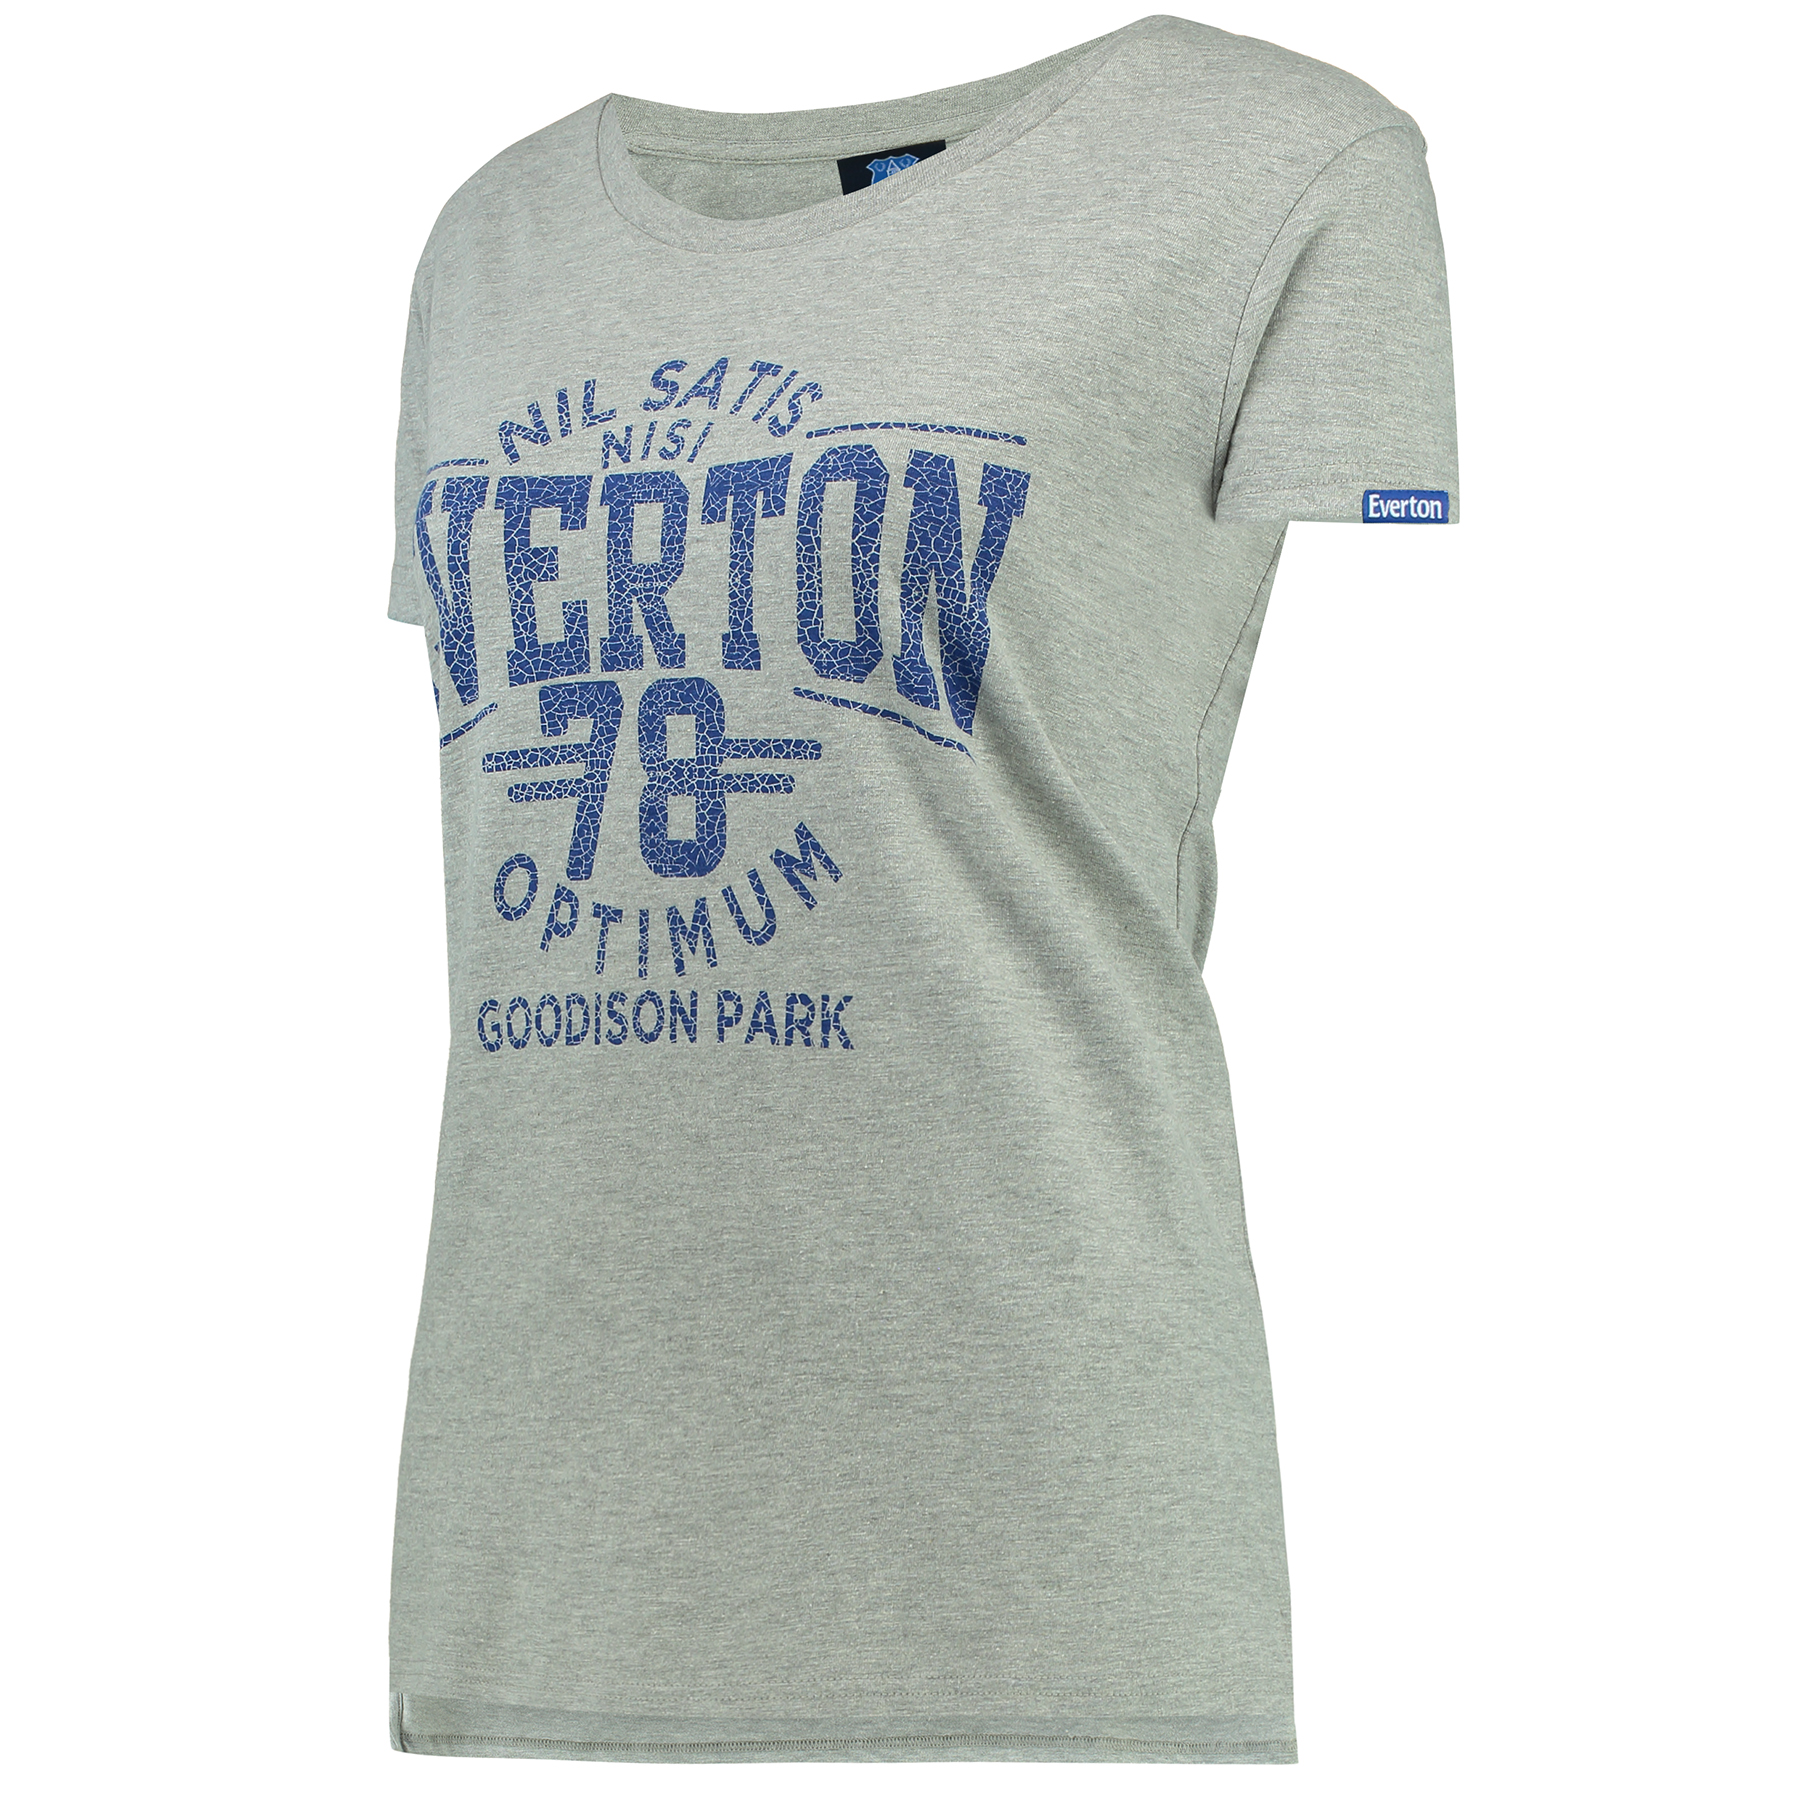 Everton Nil Satis T-Shirt - Grey Marl - Womens